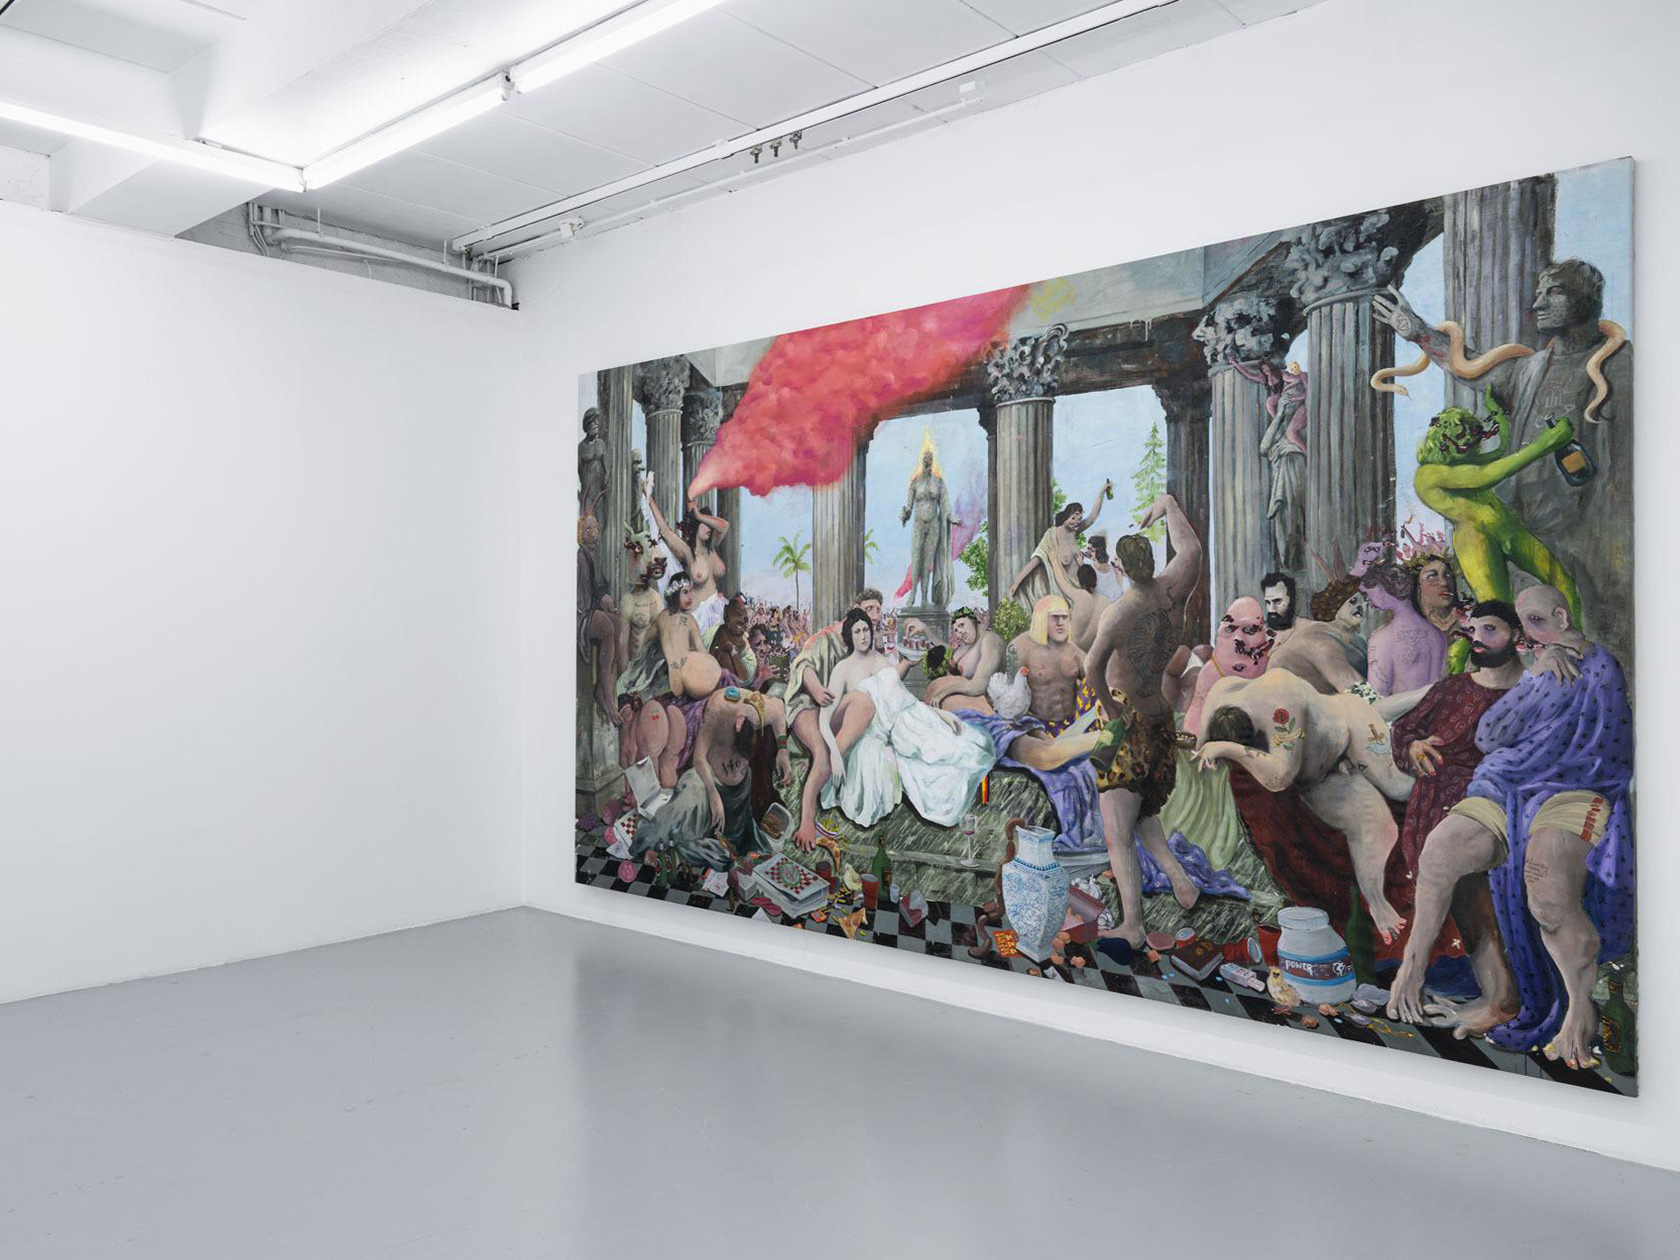 The exhibition 'Reality Kings' by Willehad Eilers and Philip Mueller sheds light on the ignorance, beauty, and wastefulness of society